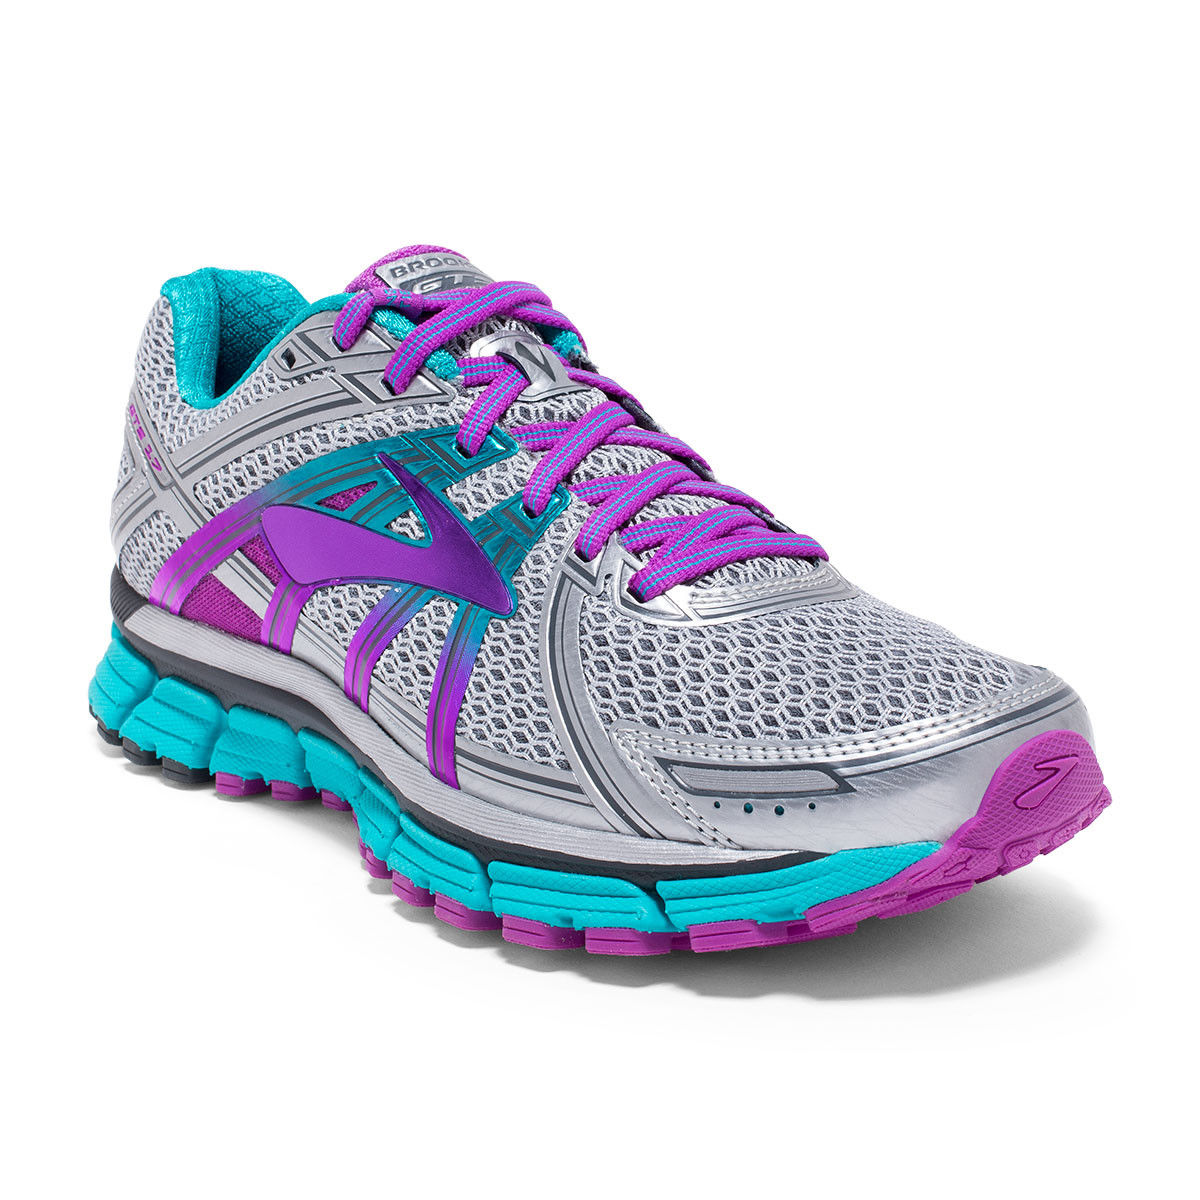 Brooks Lady Adrenaline GTS 17 2A in Silber Purple